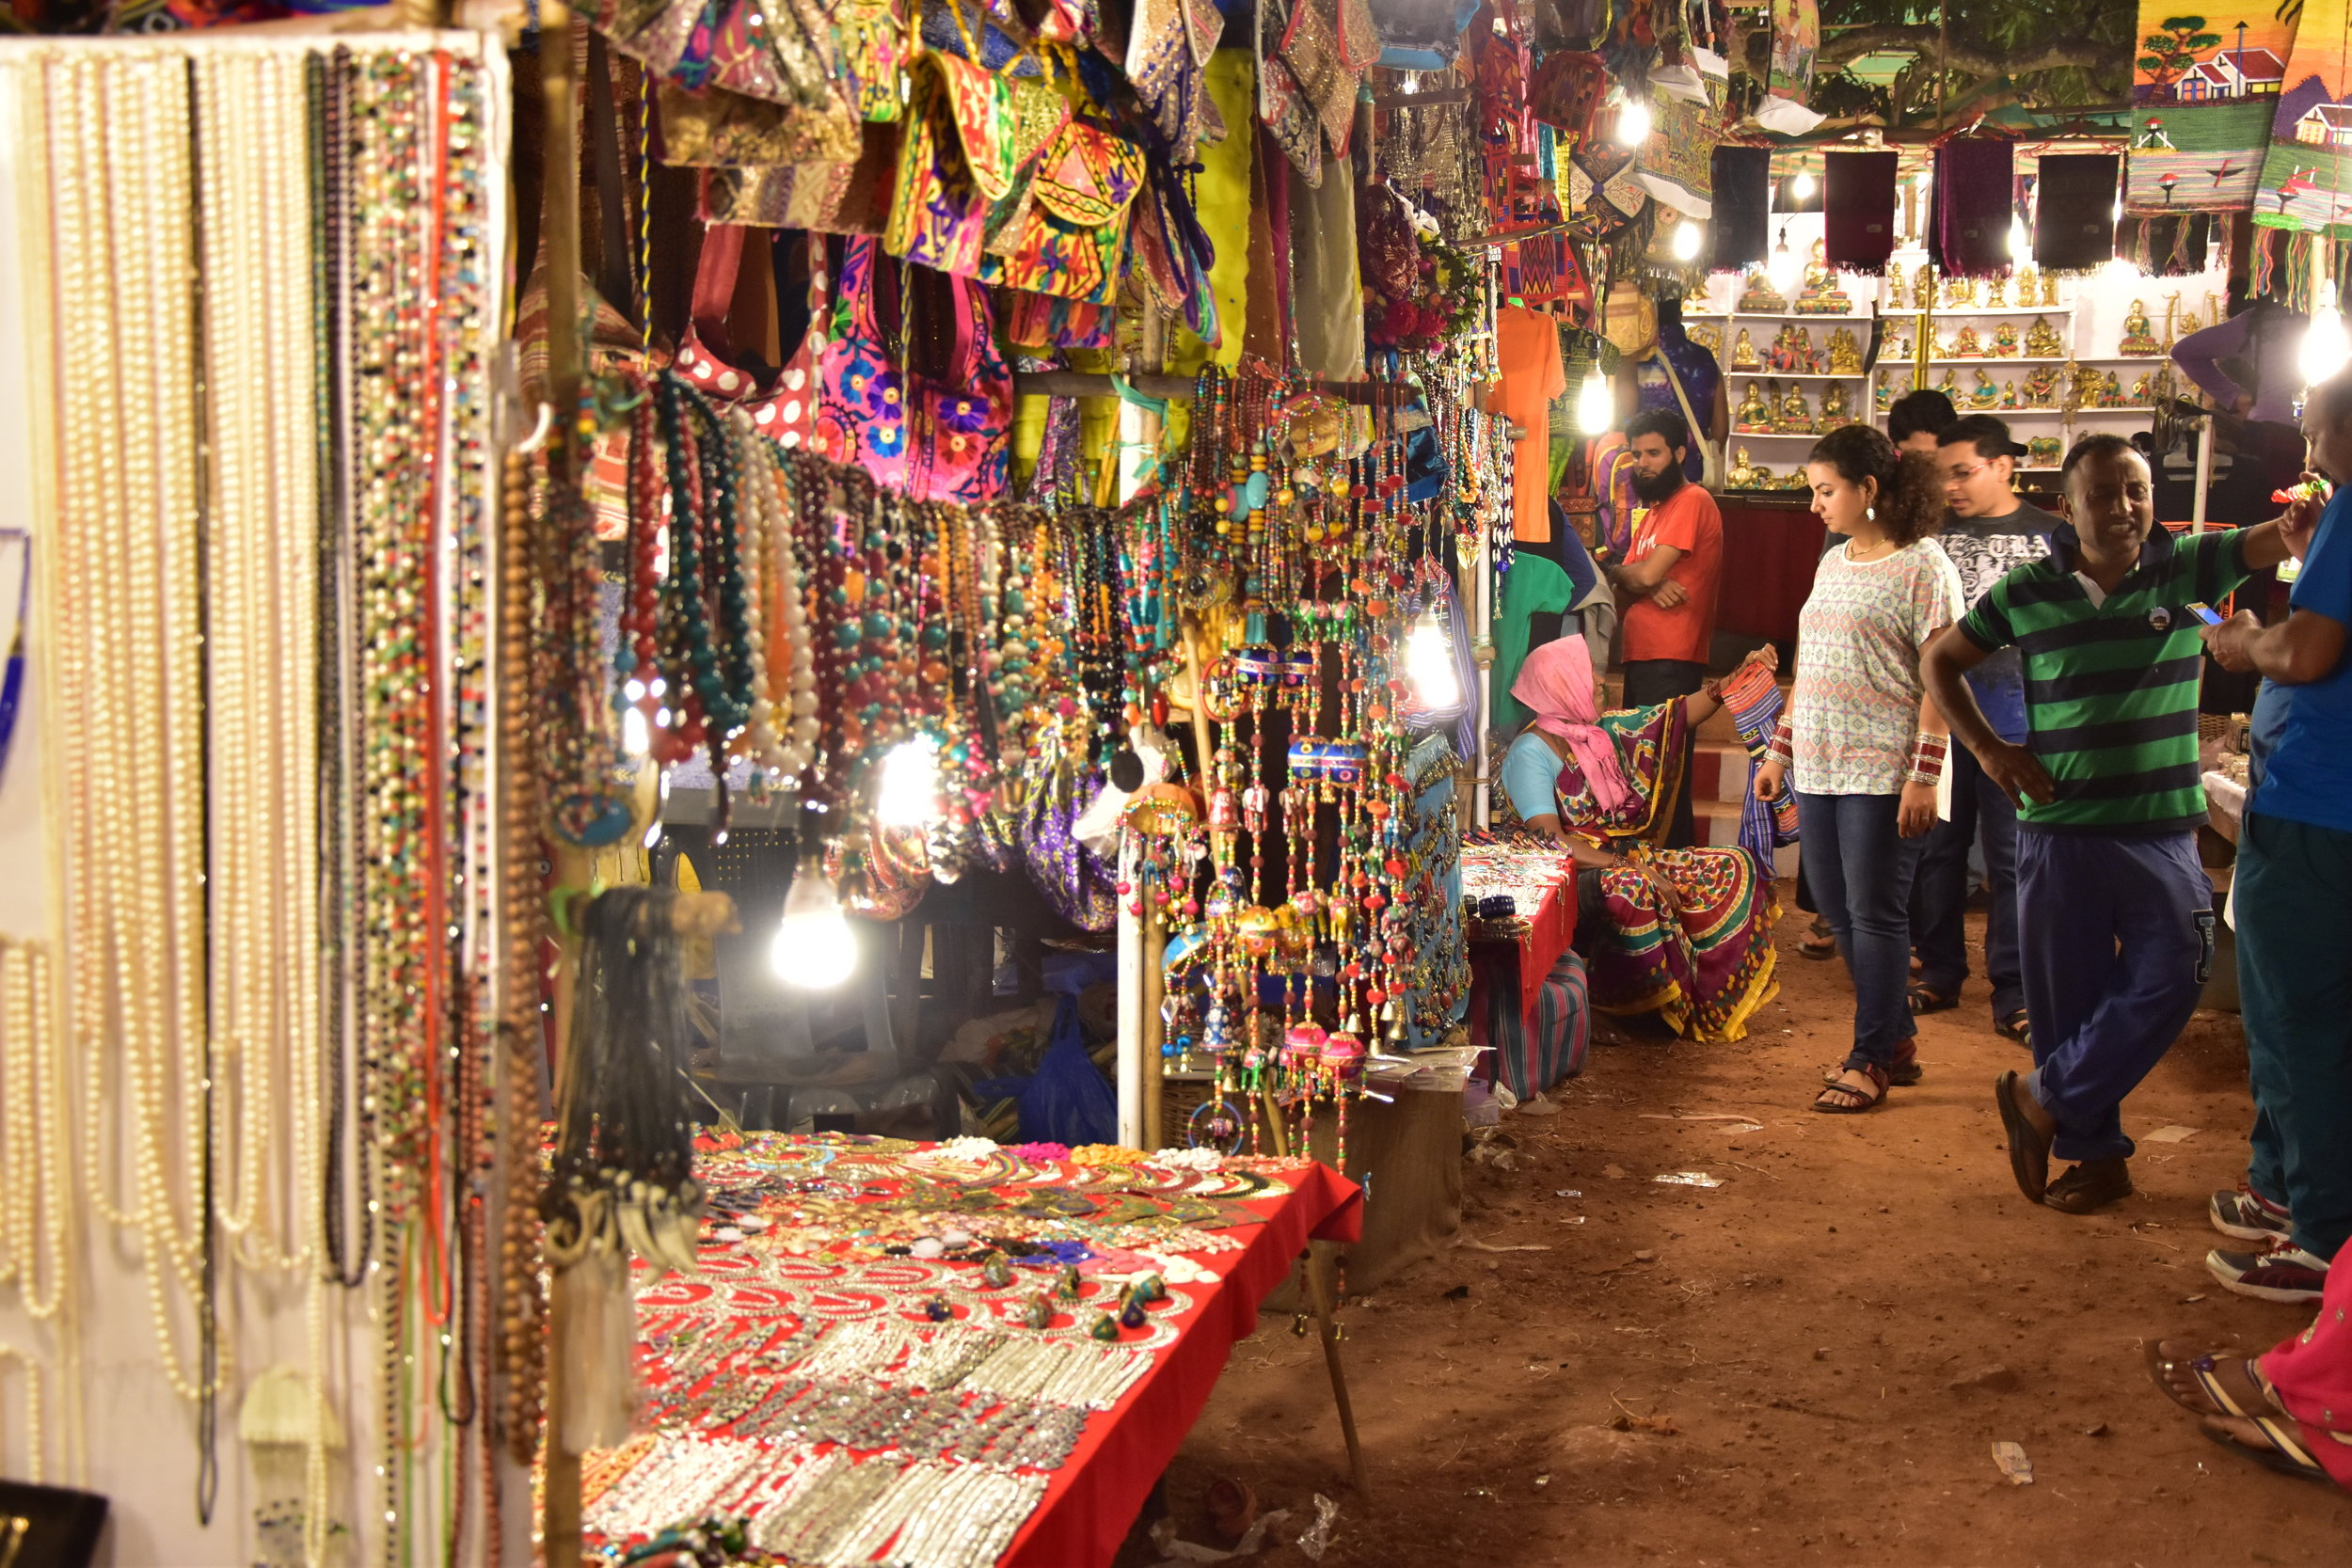 Anjuna Night Market in Goa, India